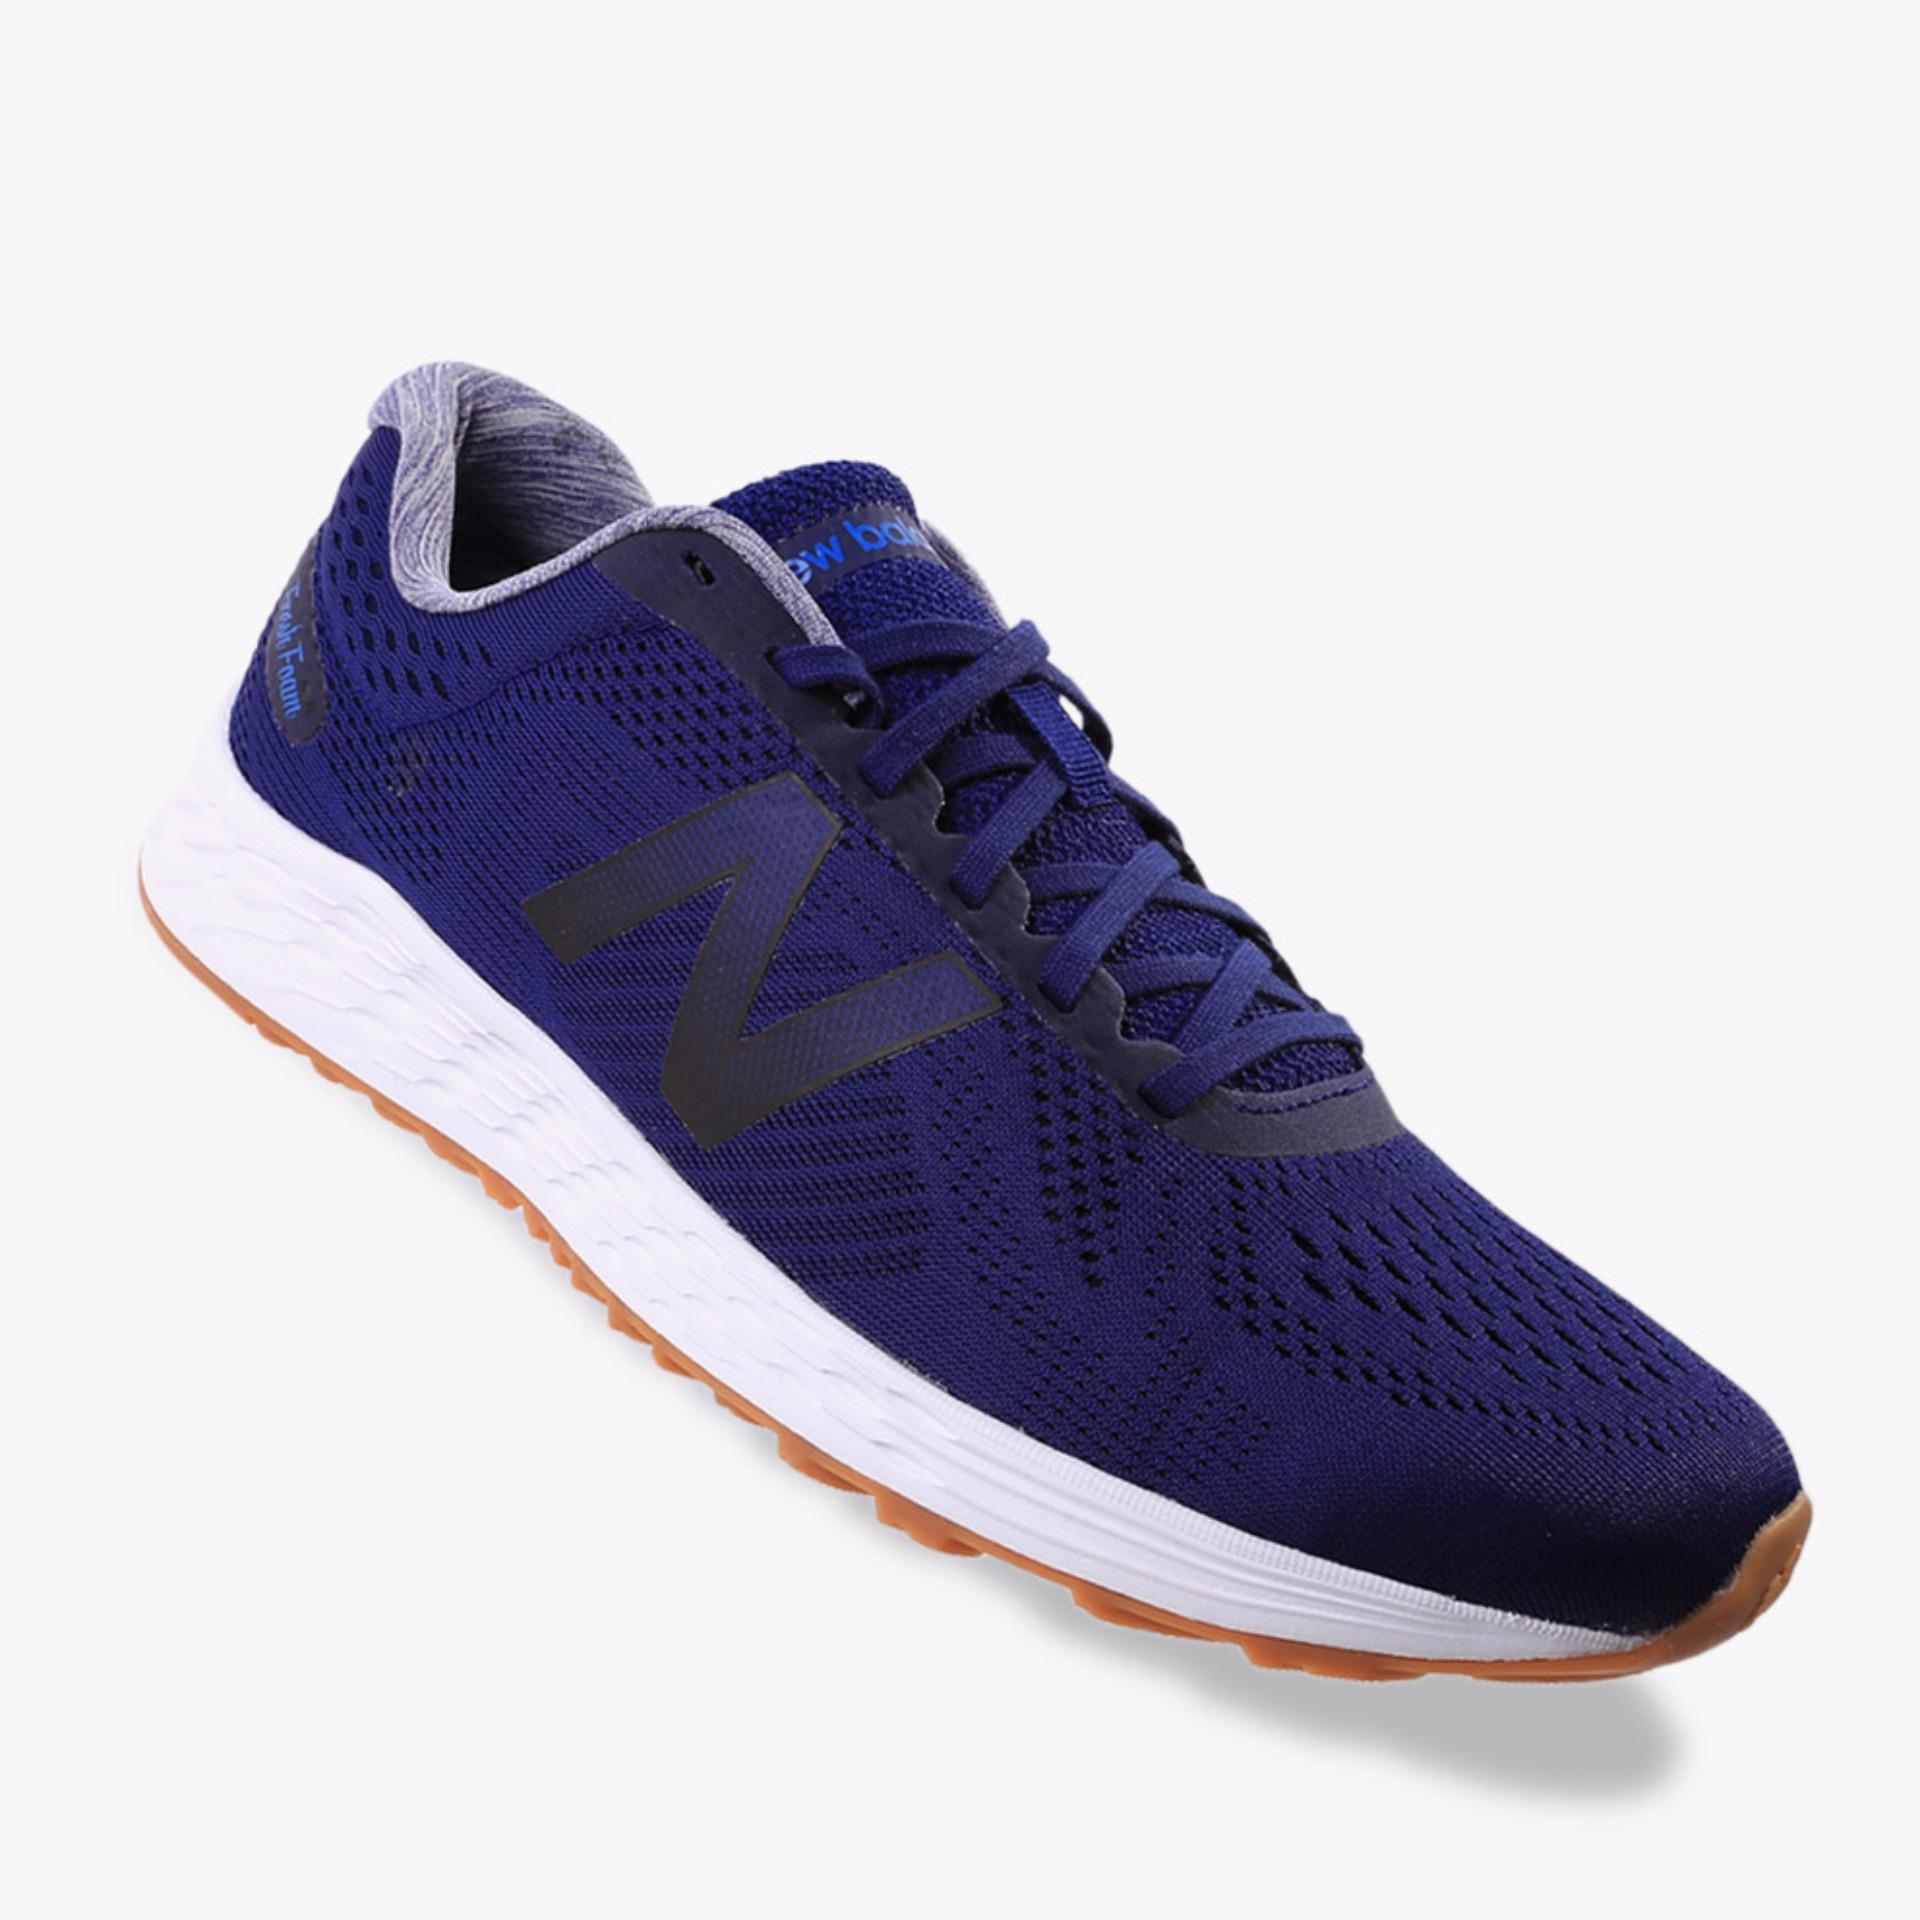 Toko New Balance Fresh Foam Arishi Men S Running Shoes Navy Terlengkap